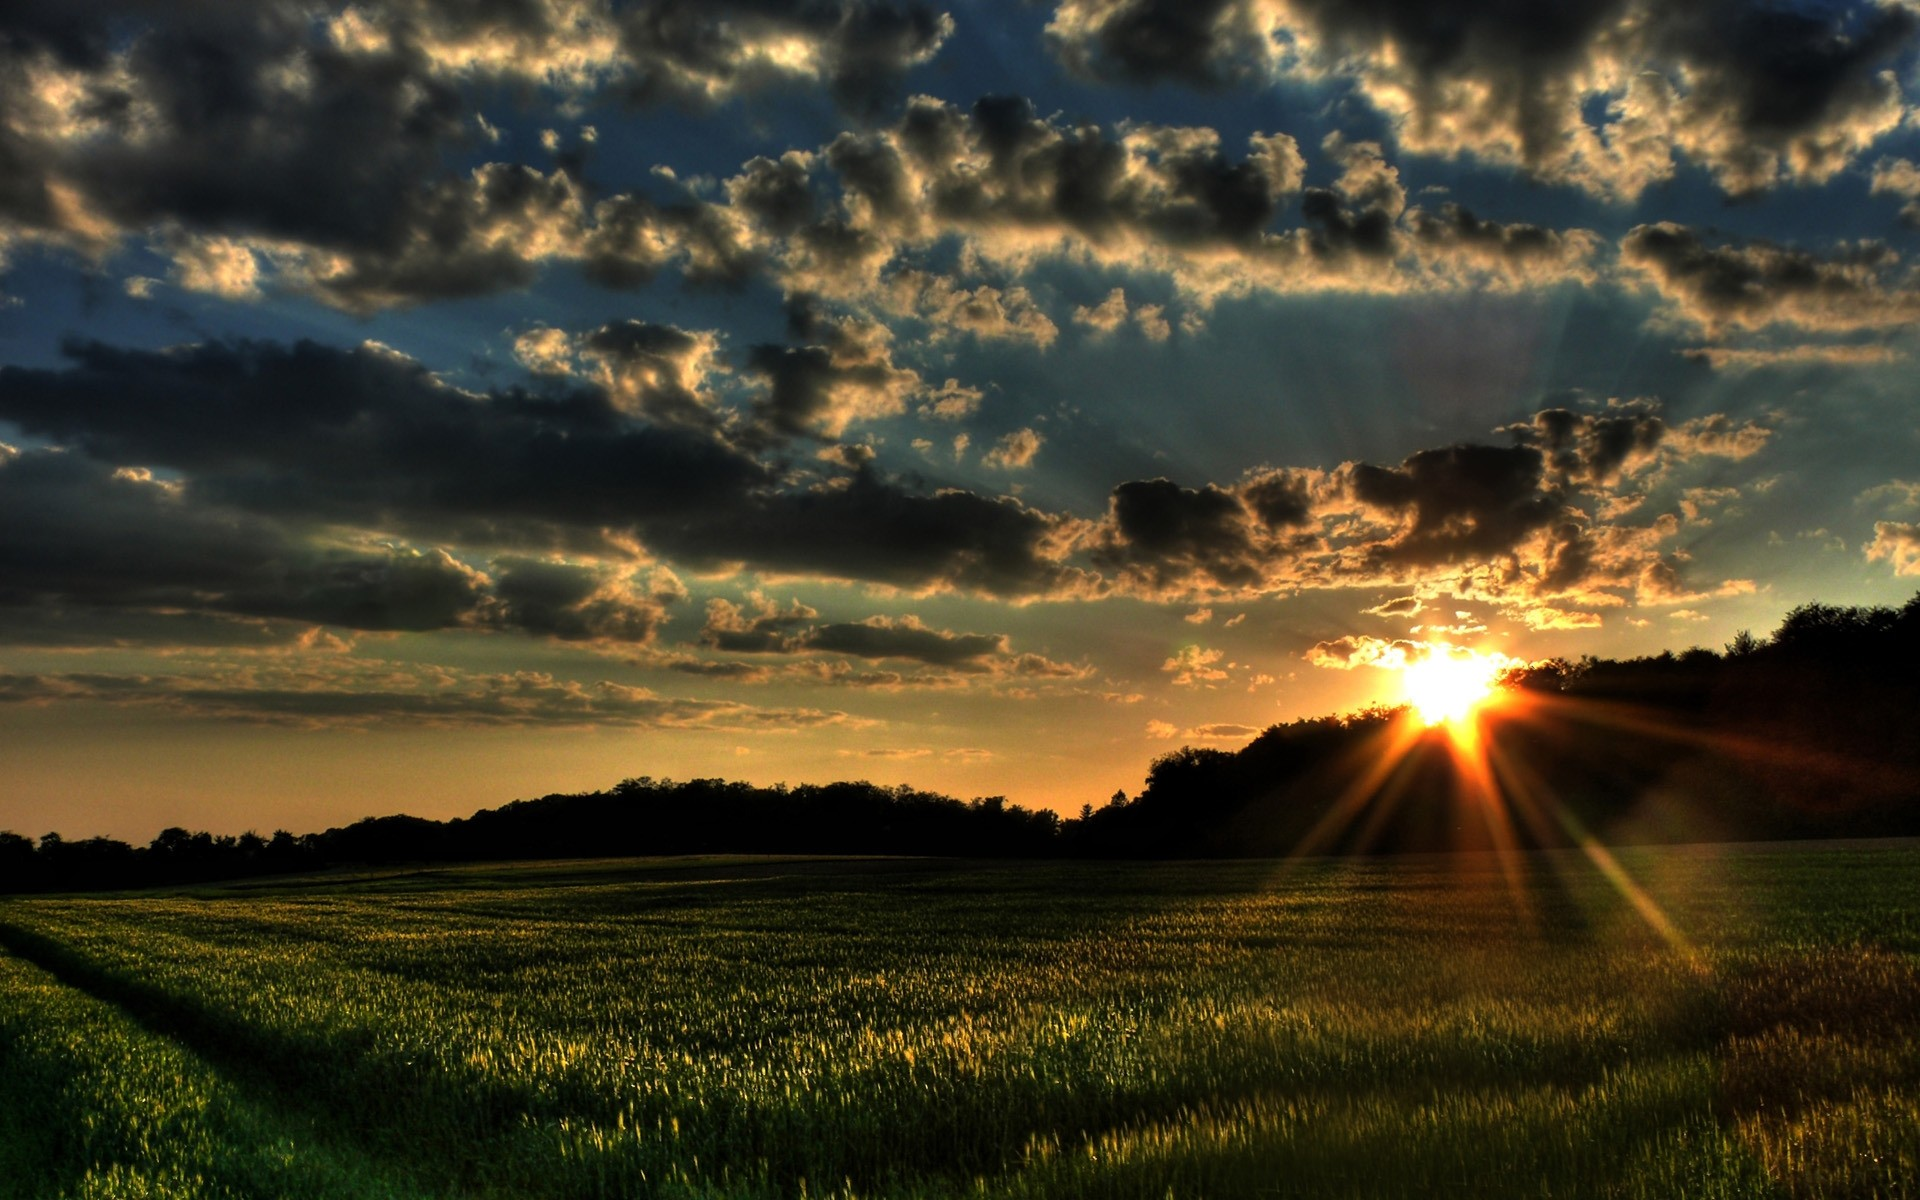 Laeacco Spring Flowers Field Sunset Grassland Scenic Photography